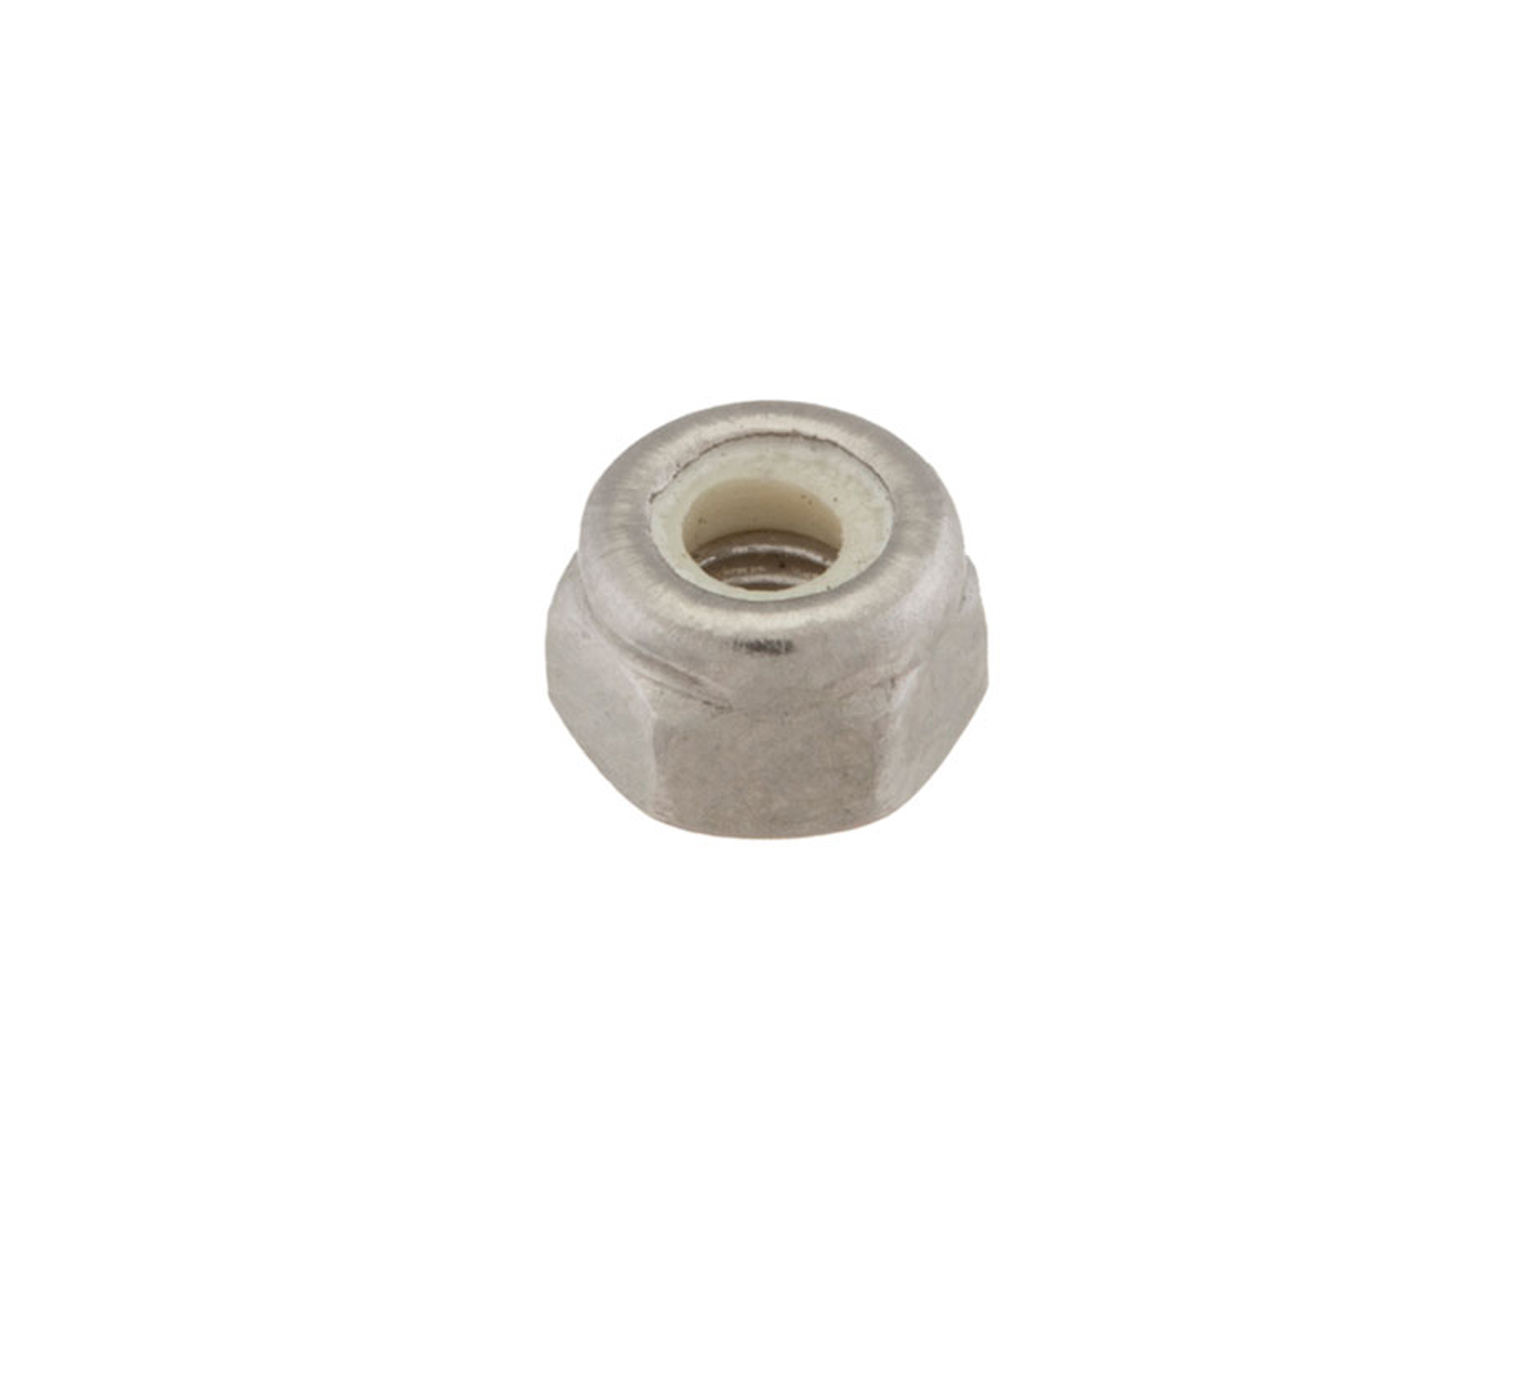 33932 Stainless Steel Hex Lock Nut - 0.304 x 0.2 in alt 1